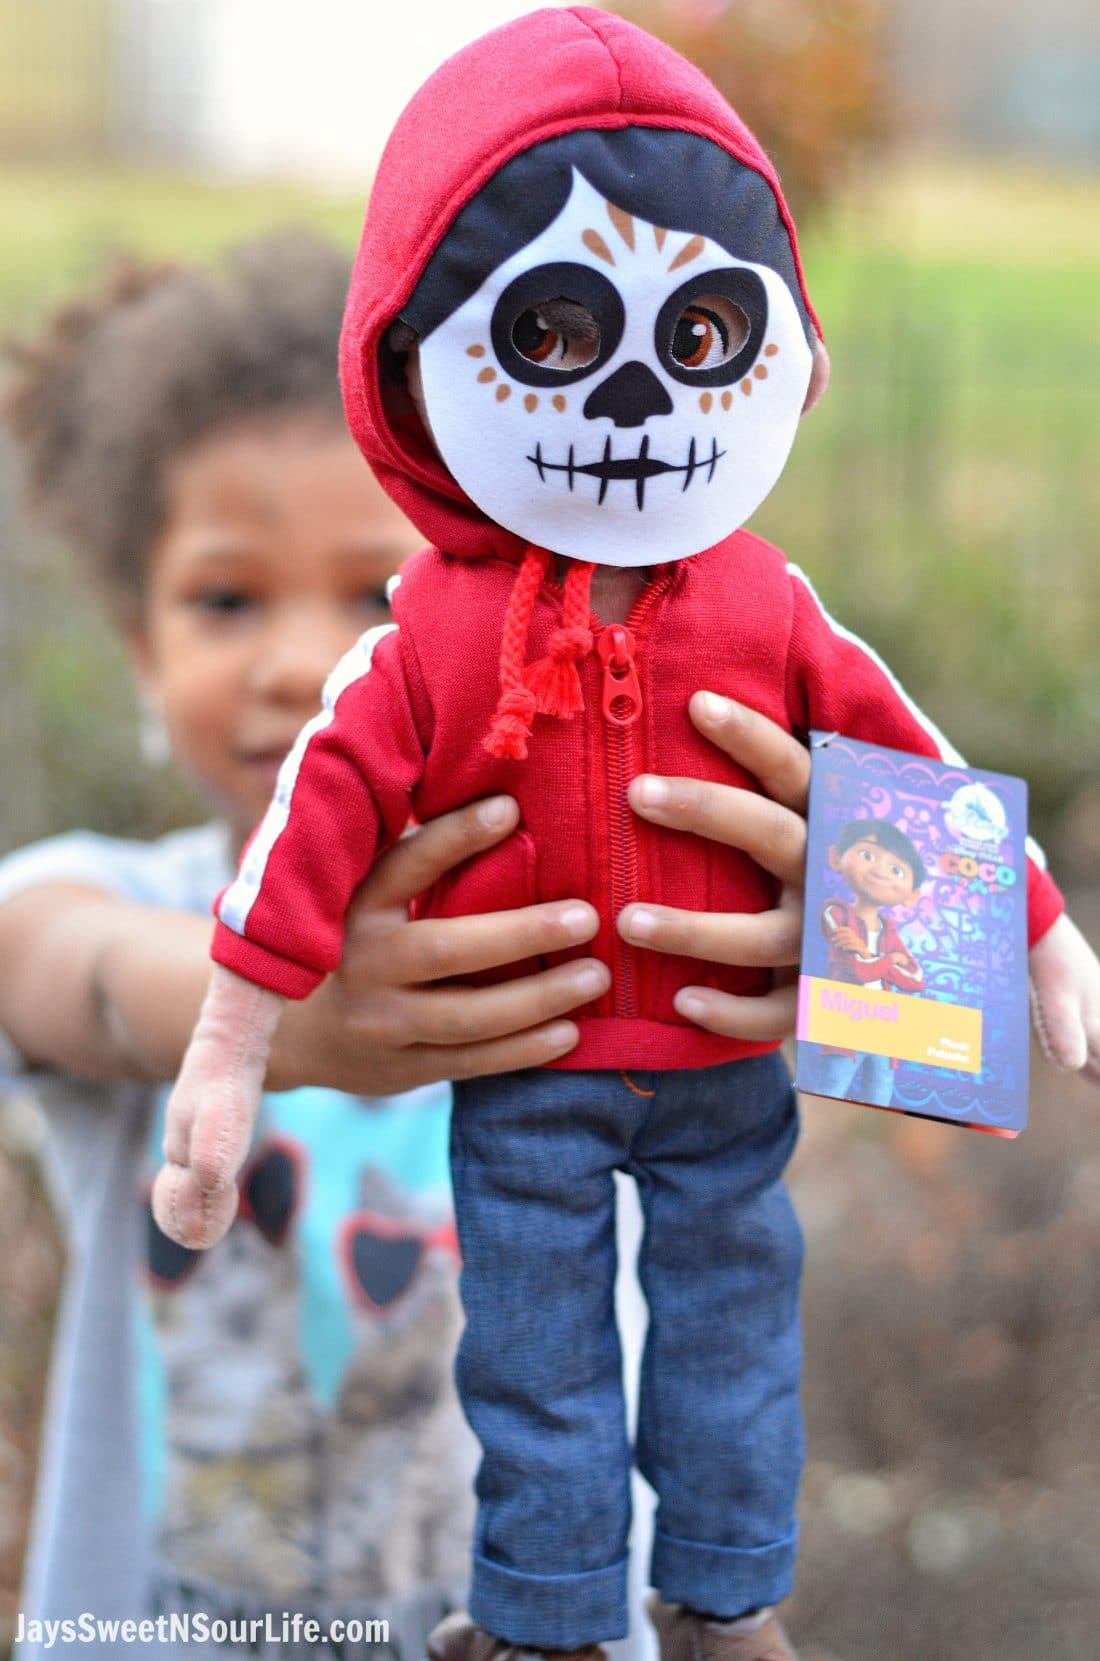 Disney Pixar's Coco is out in theaters everywhere today! Make sure you visit your local theater to catch this beautiful film with your whole family. Bring the Disney magic home with these New Disney Pixar's Coco Products For The Whole Family.